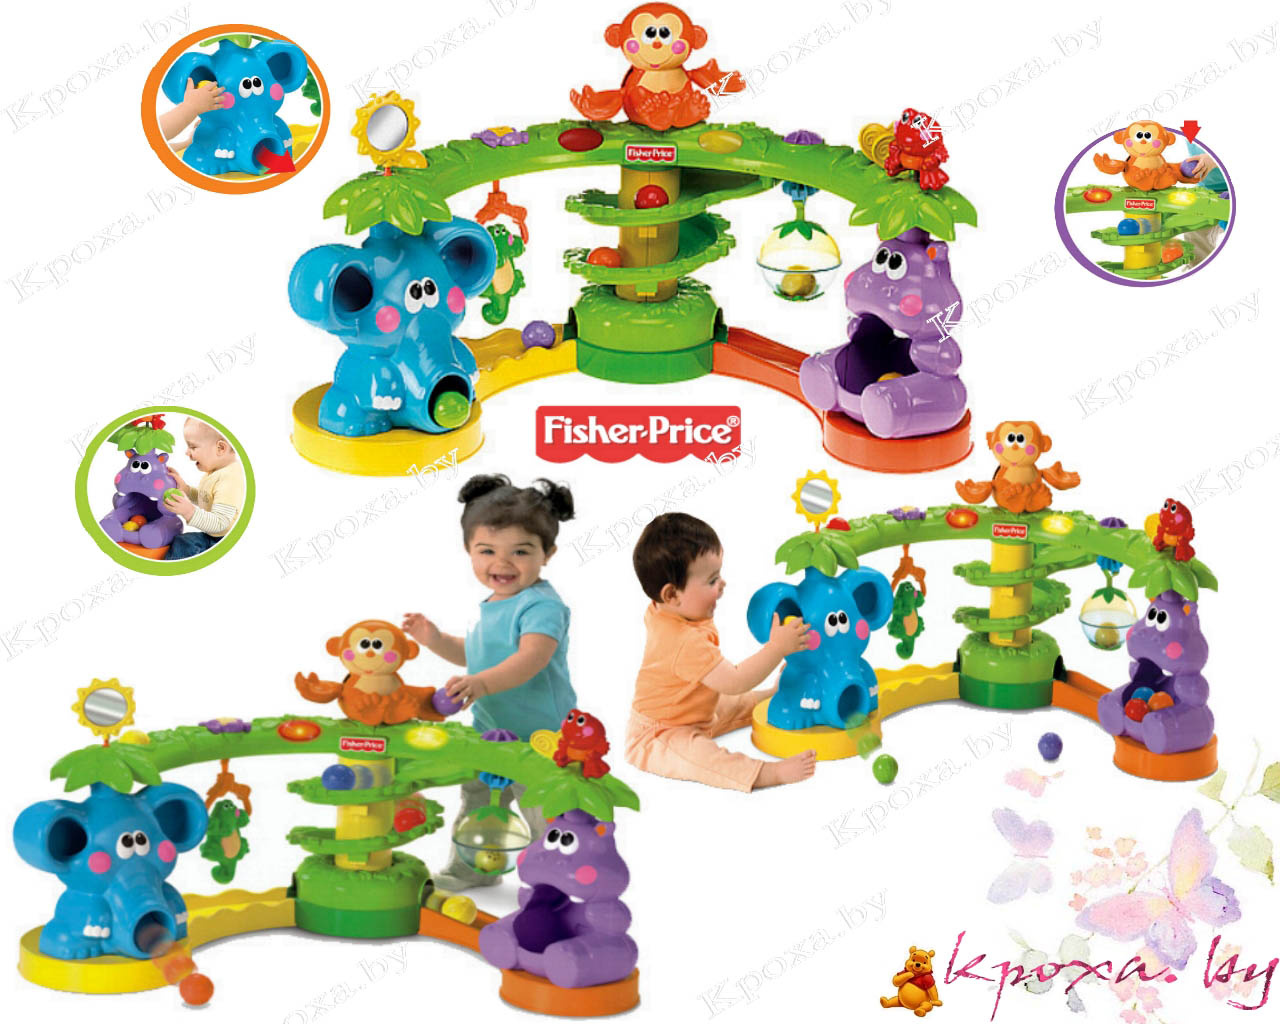 fisher-price-go-baby-go-crawl-and-cruise-musical-jungle